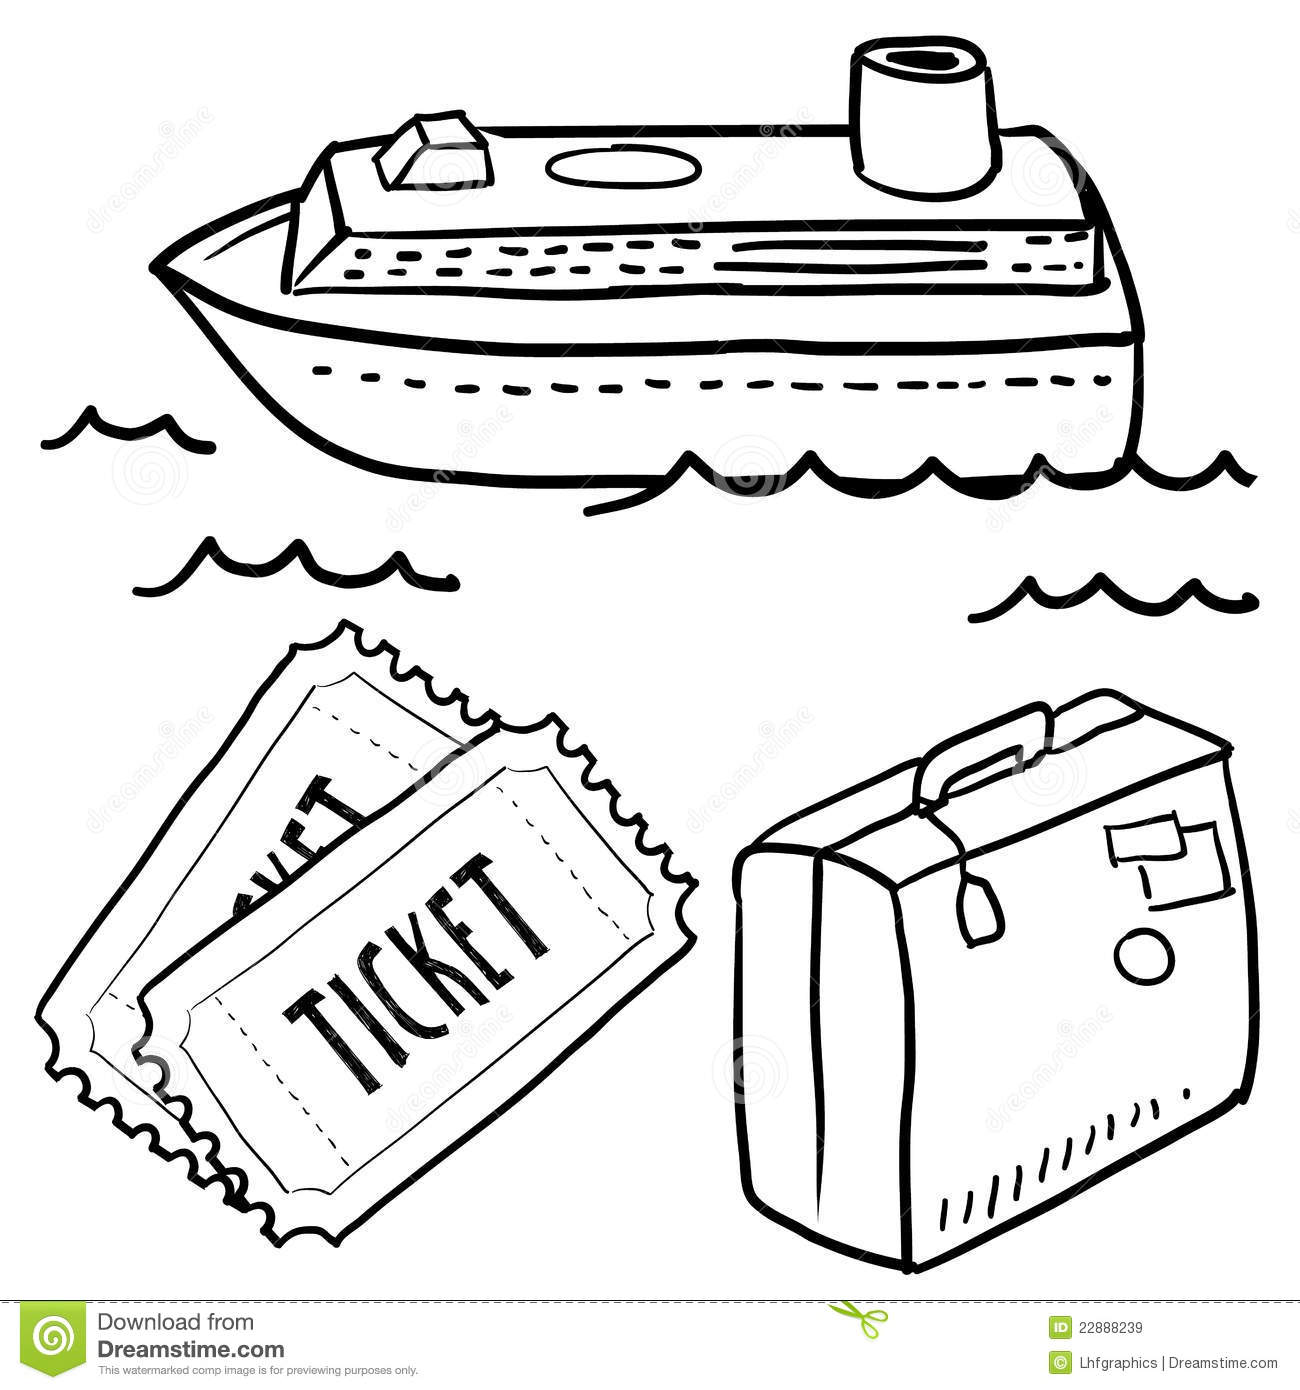 Seas Cruise Objects Sketch Stock Illustration